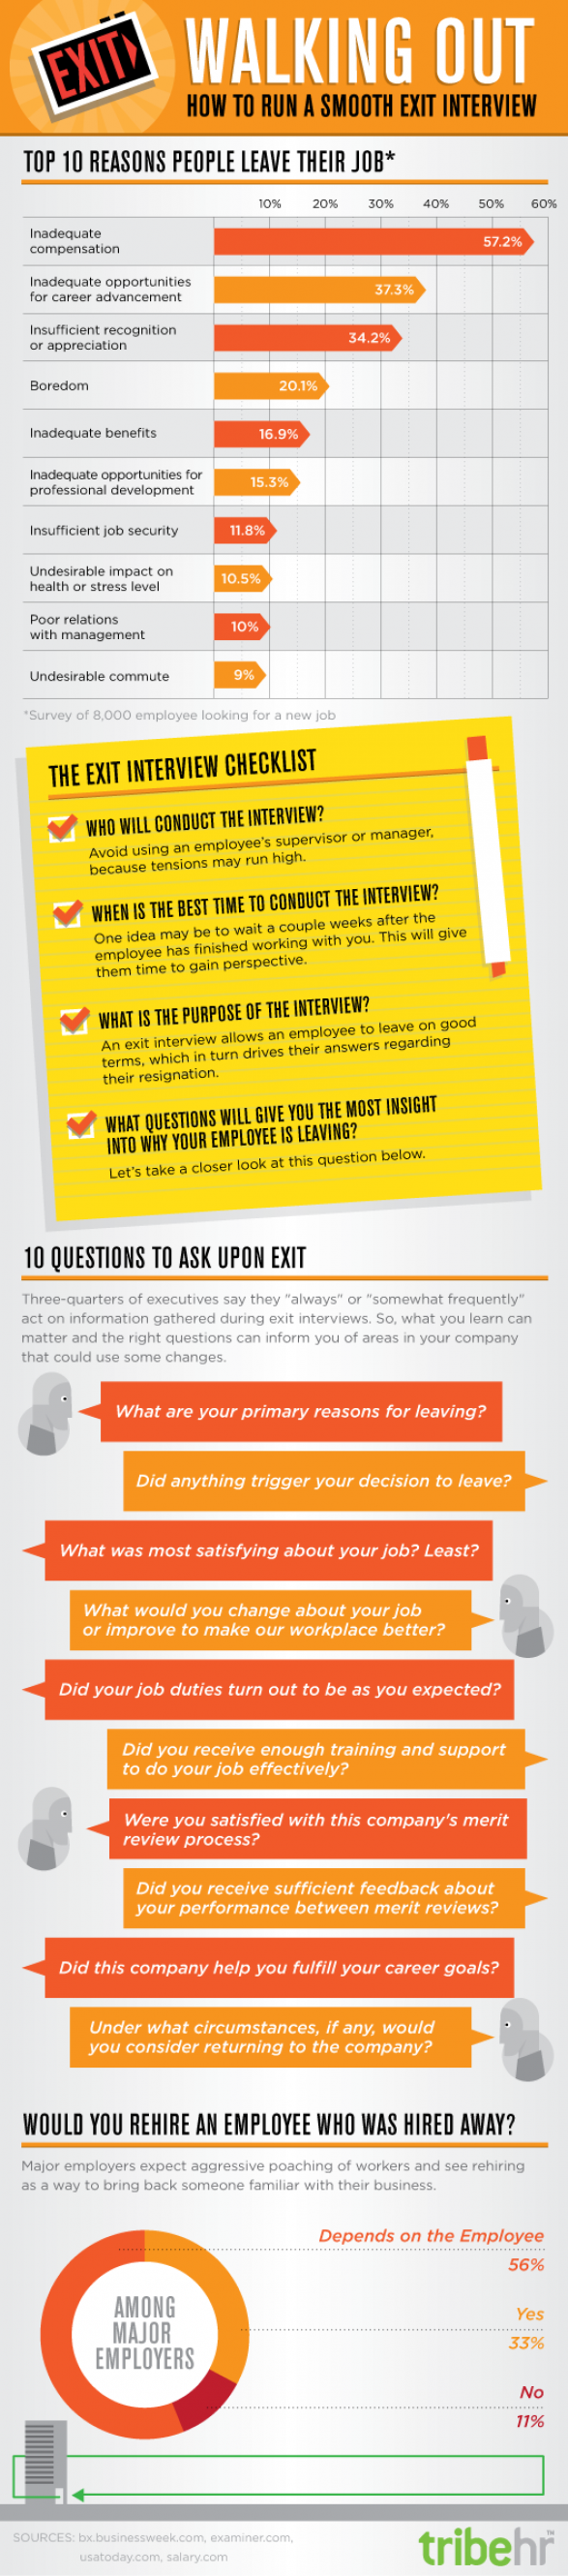 Walking Out: How to Run a Smooth Exit Interview